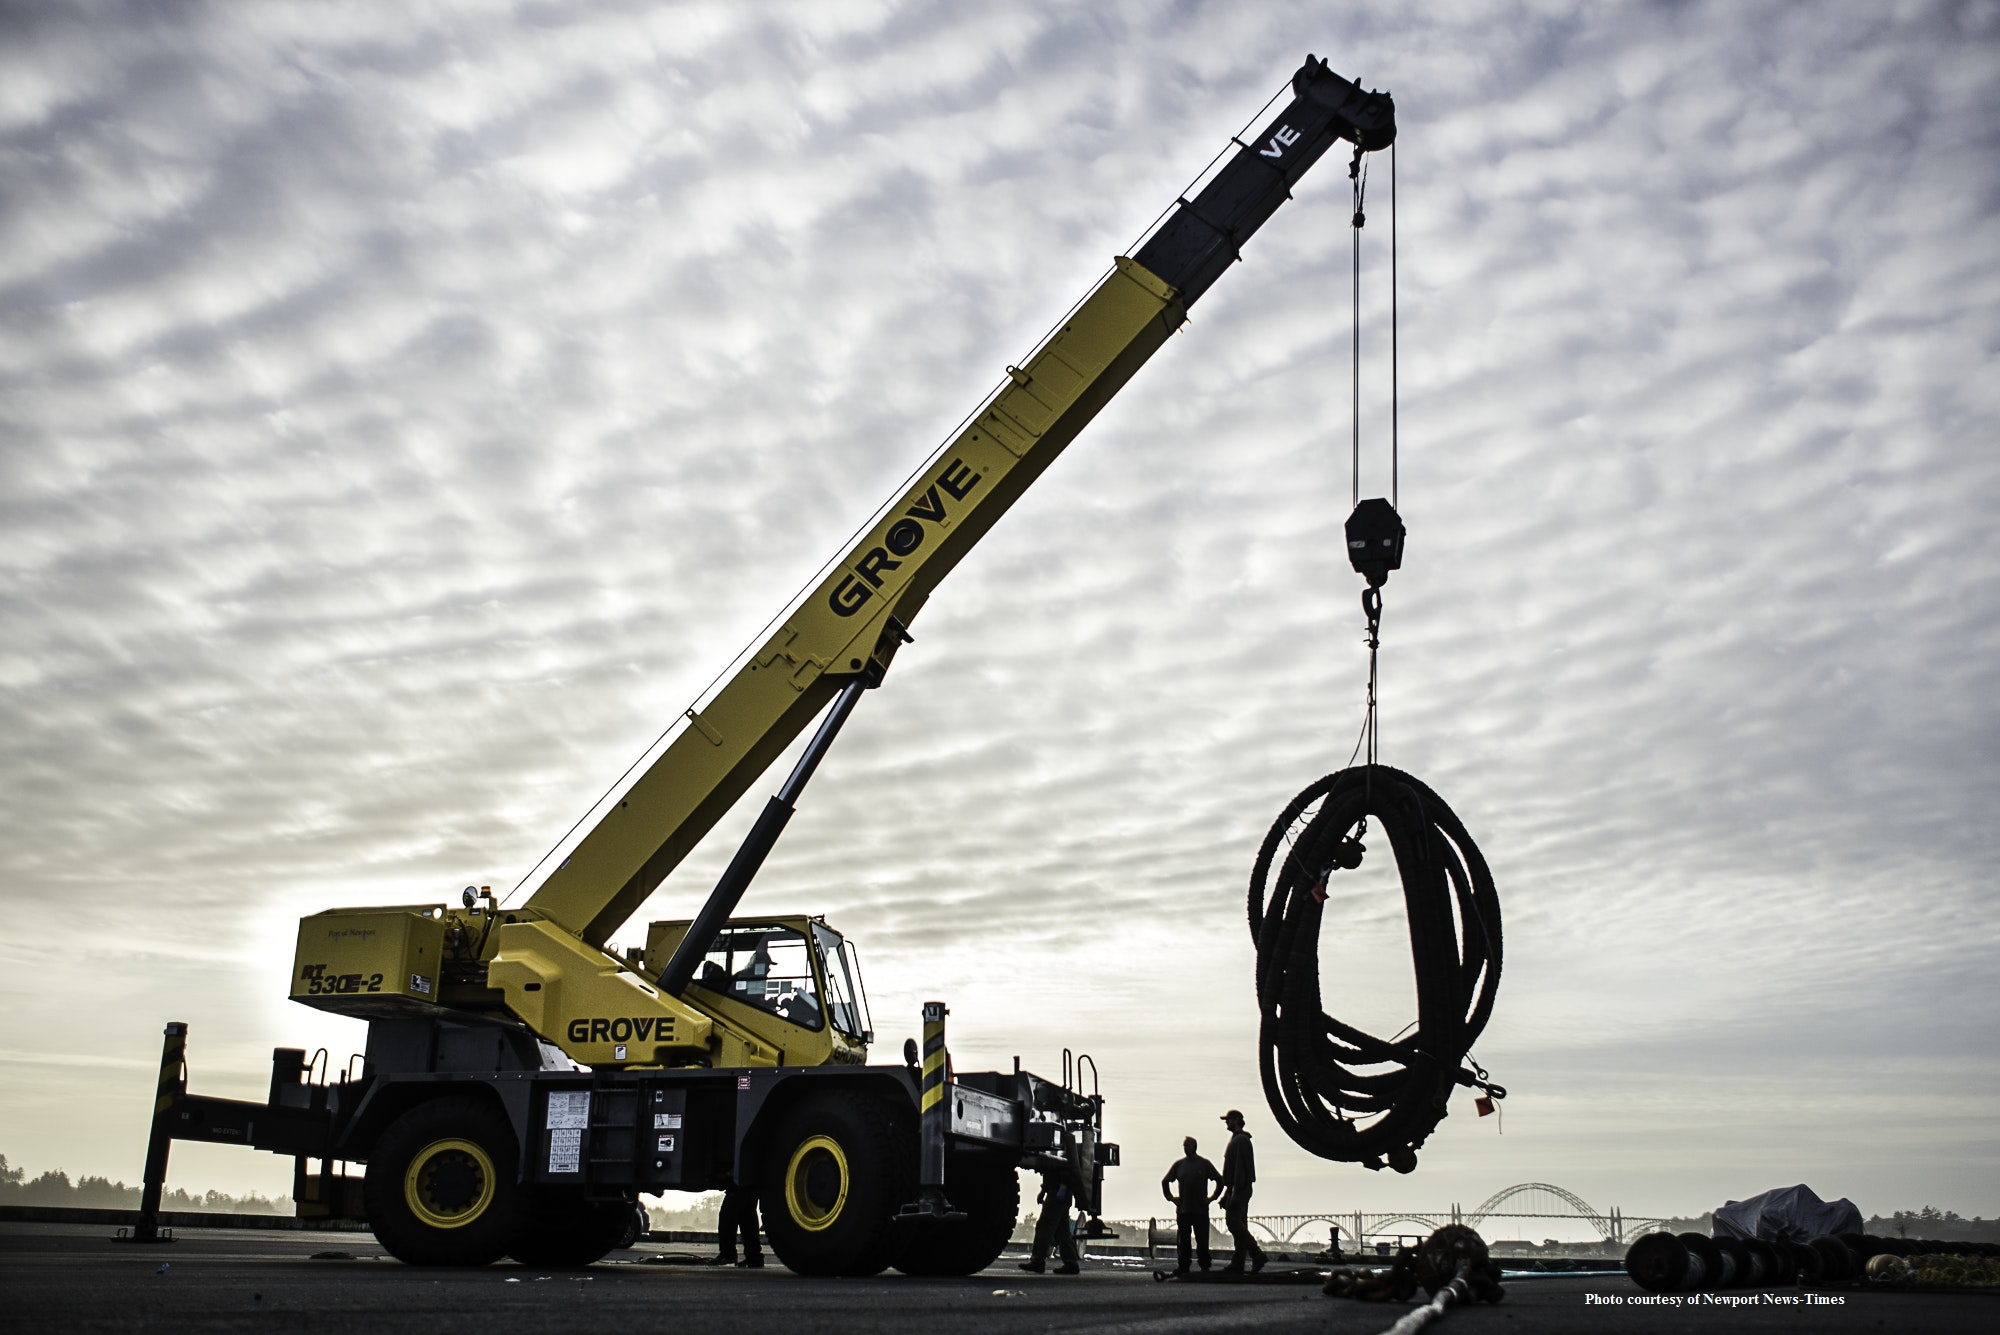 Crane lifting cable